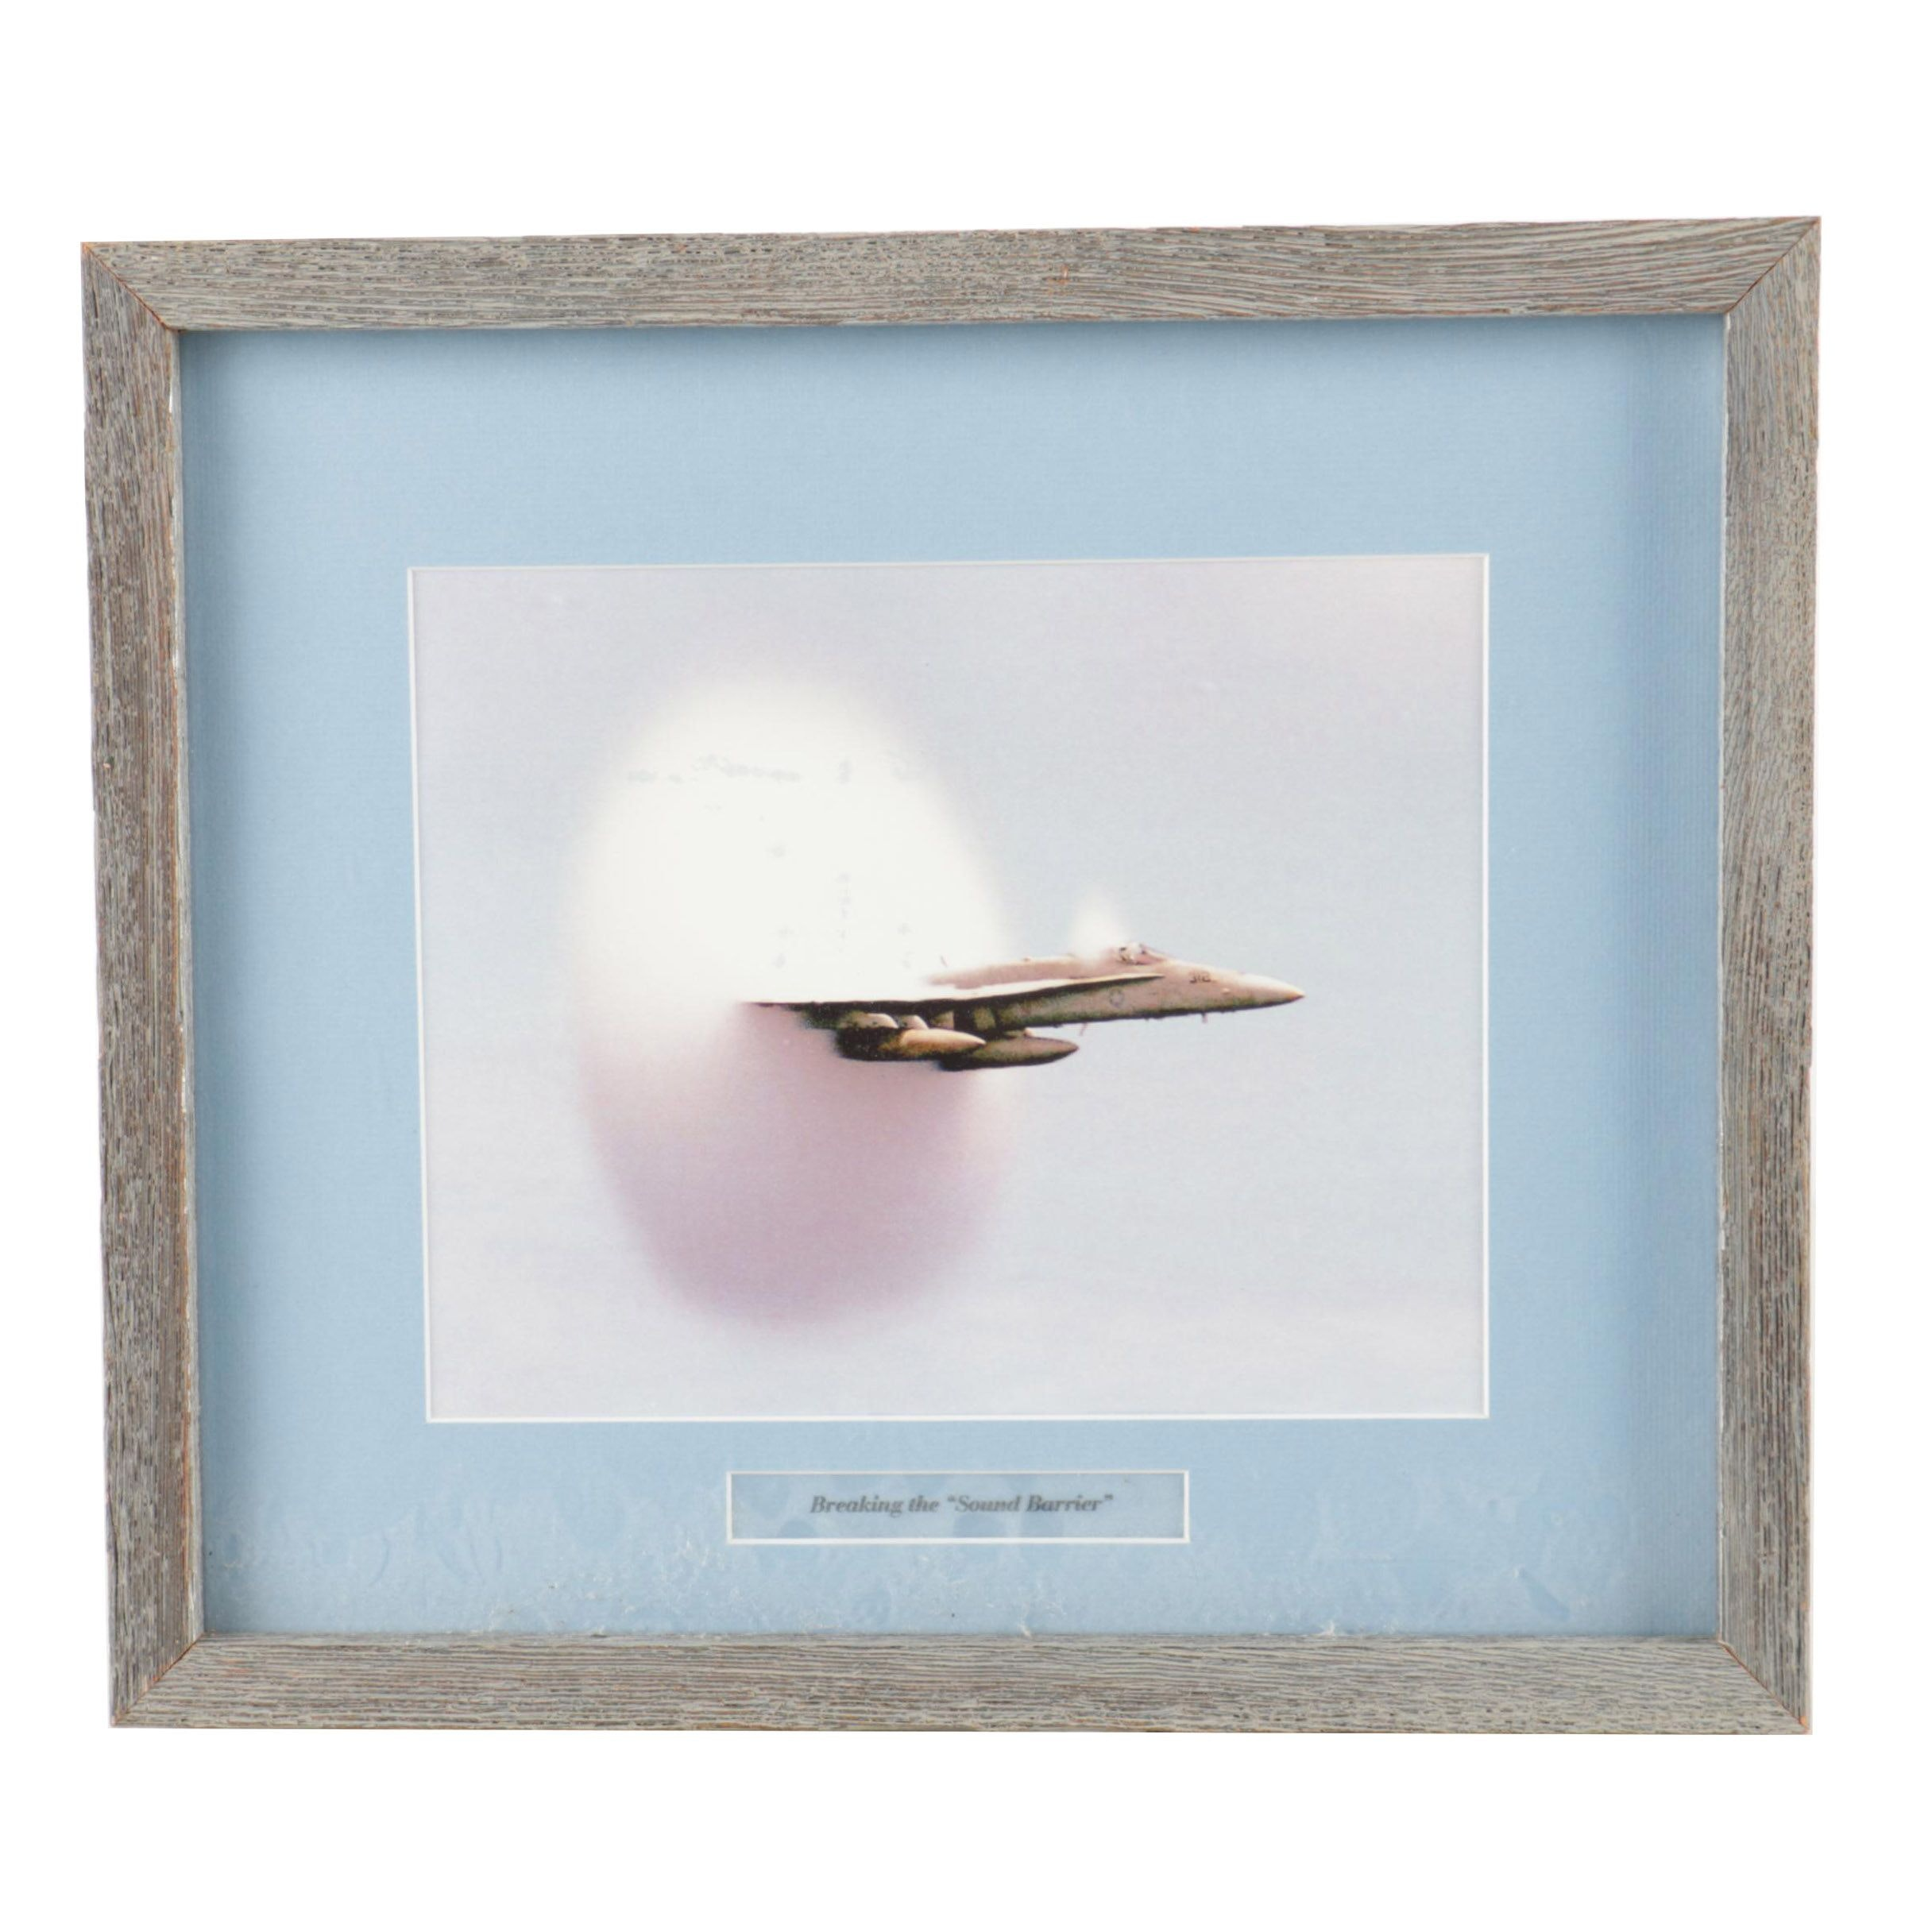 """Reproduction Print on Paper """"Breaking the """"Sound Barrier"""""""""""